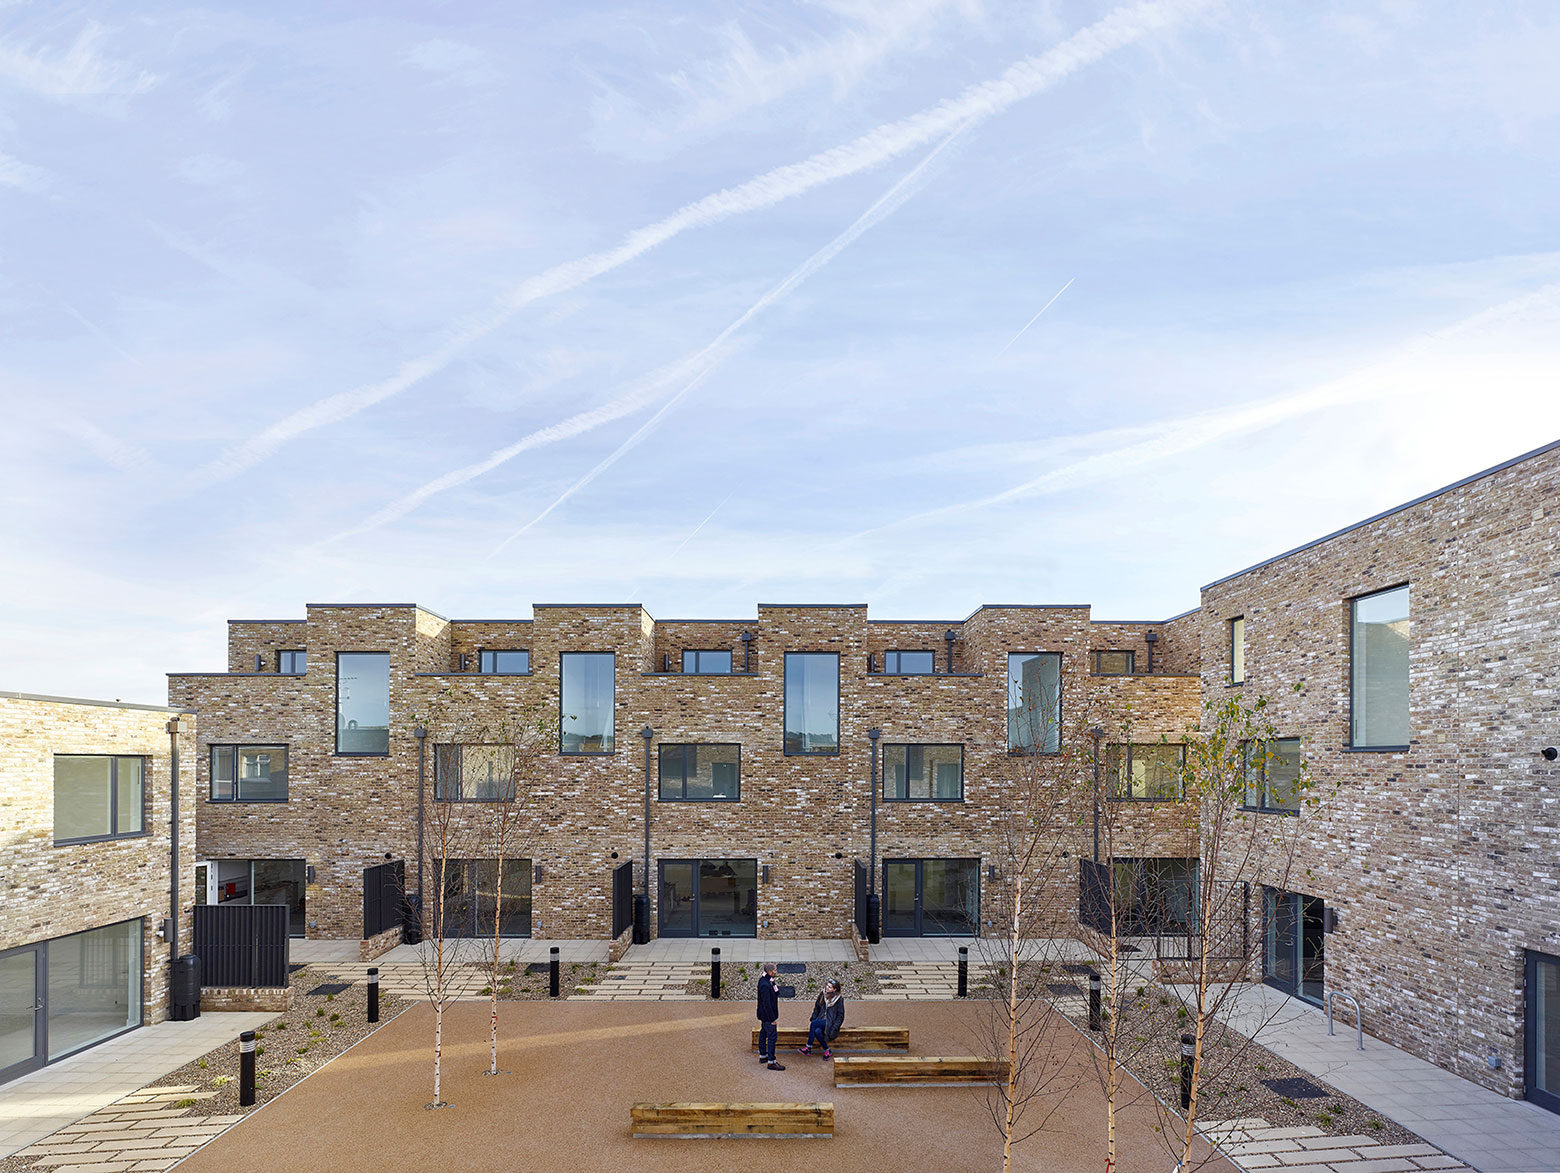 Bracelet Close receives Commendation at Civic Trust Awards